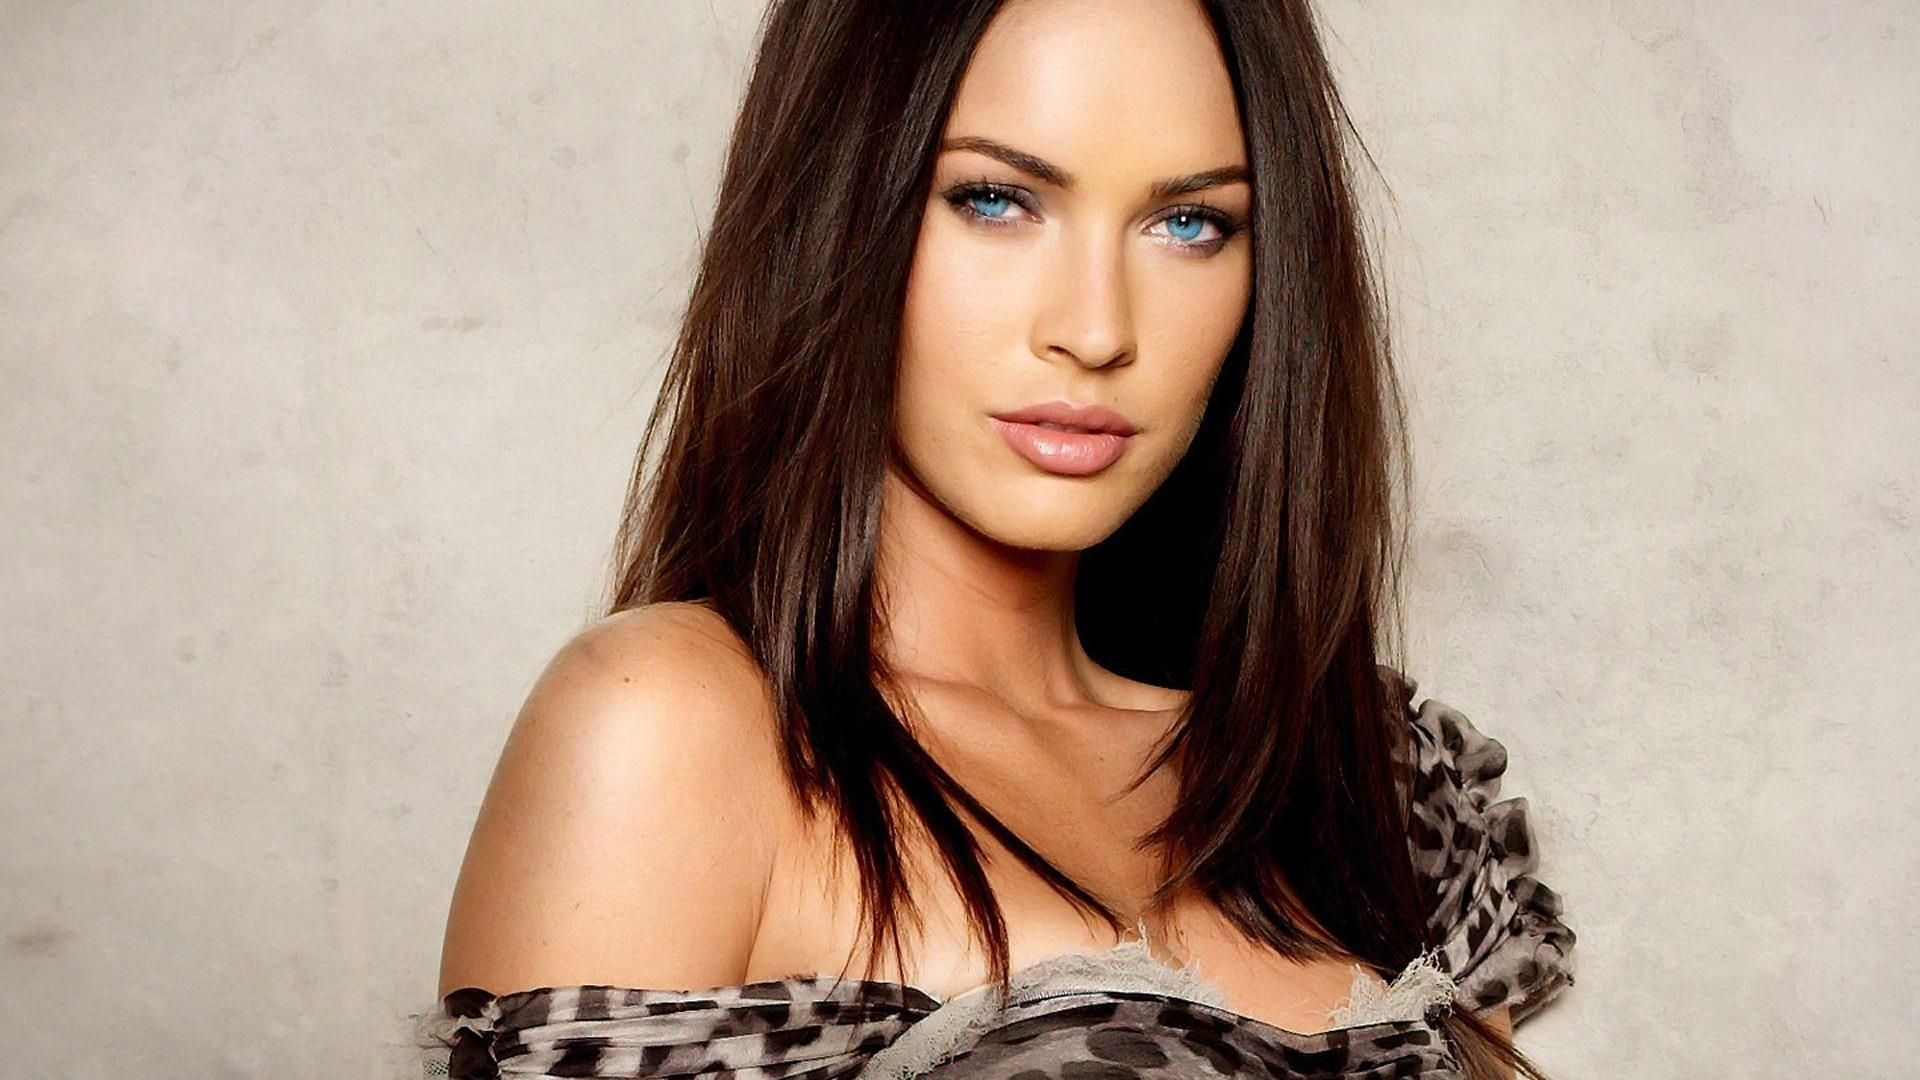 Hd wallpaper ladies - Megan Fox 2014 Hd Wallpaper